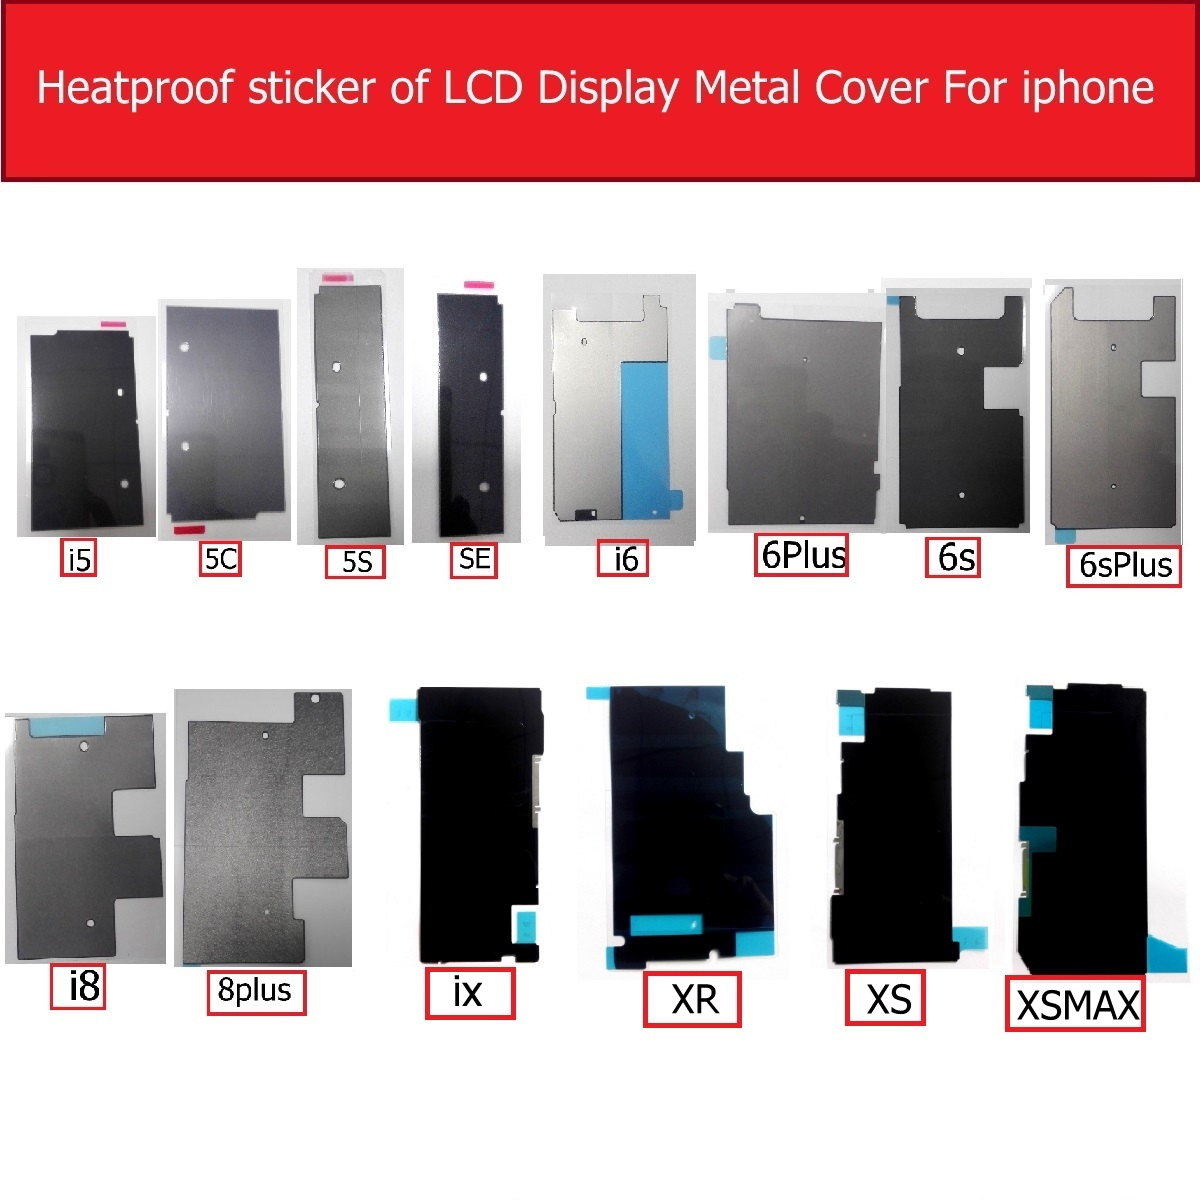 Heatproof Sticker Of Display LCD Metal Cover For Iphone 5 5s 5c Se 6 6s 8 Plus X XR XS MAX Insulation Heat Sink Dissipation Glue